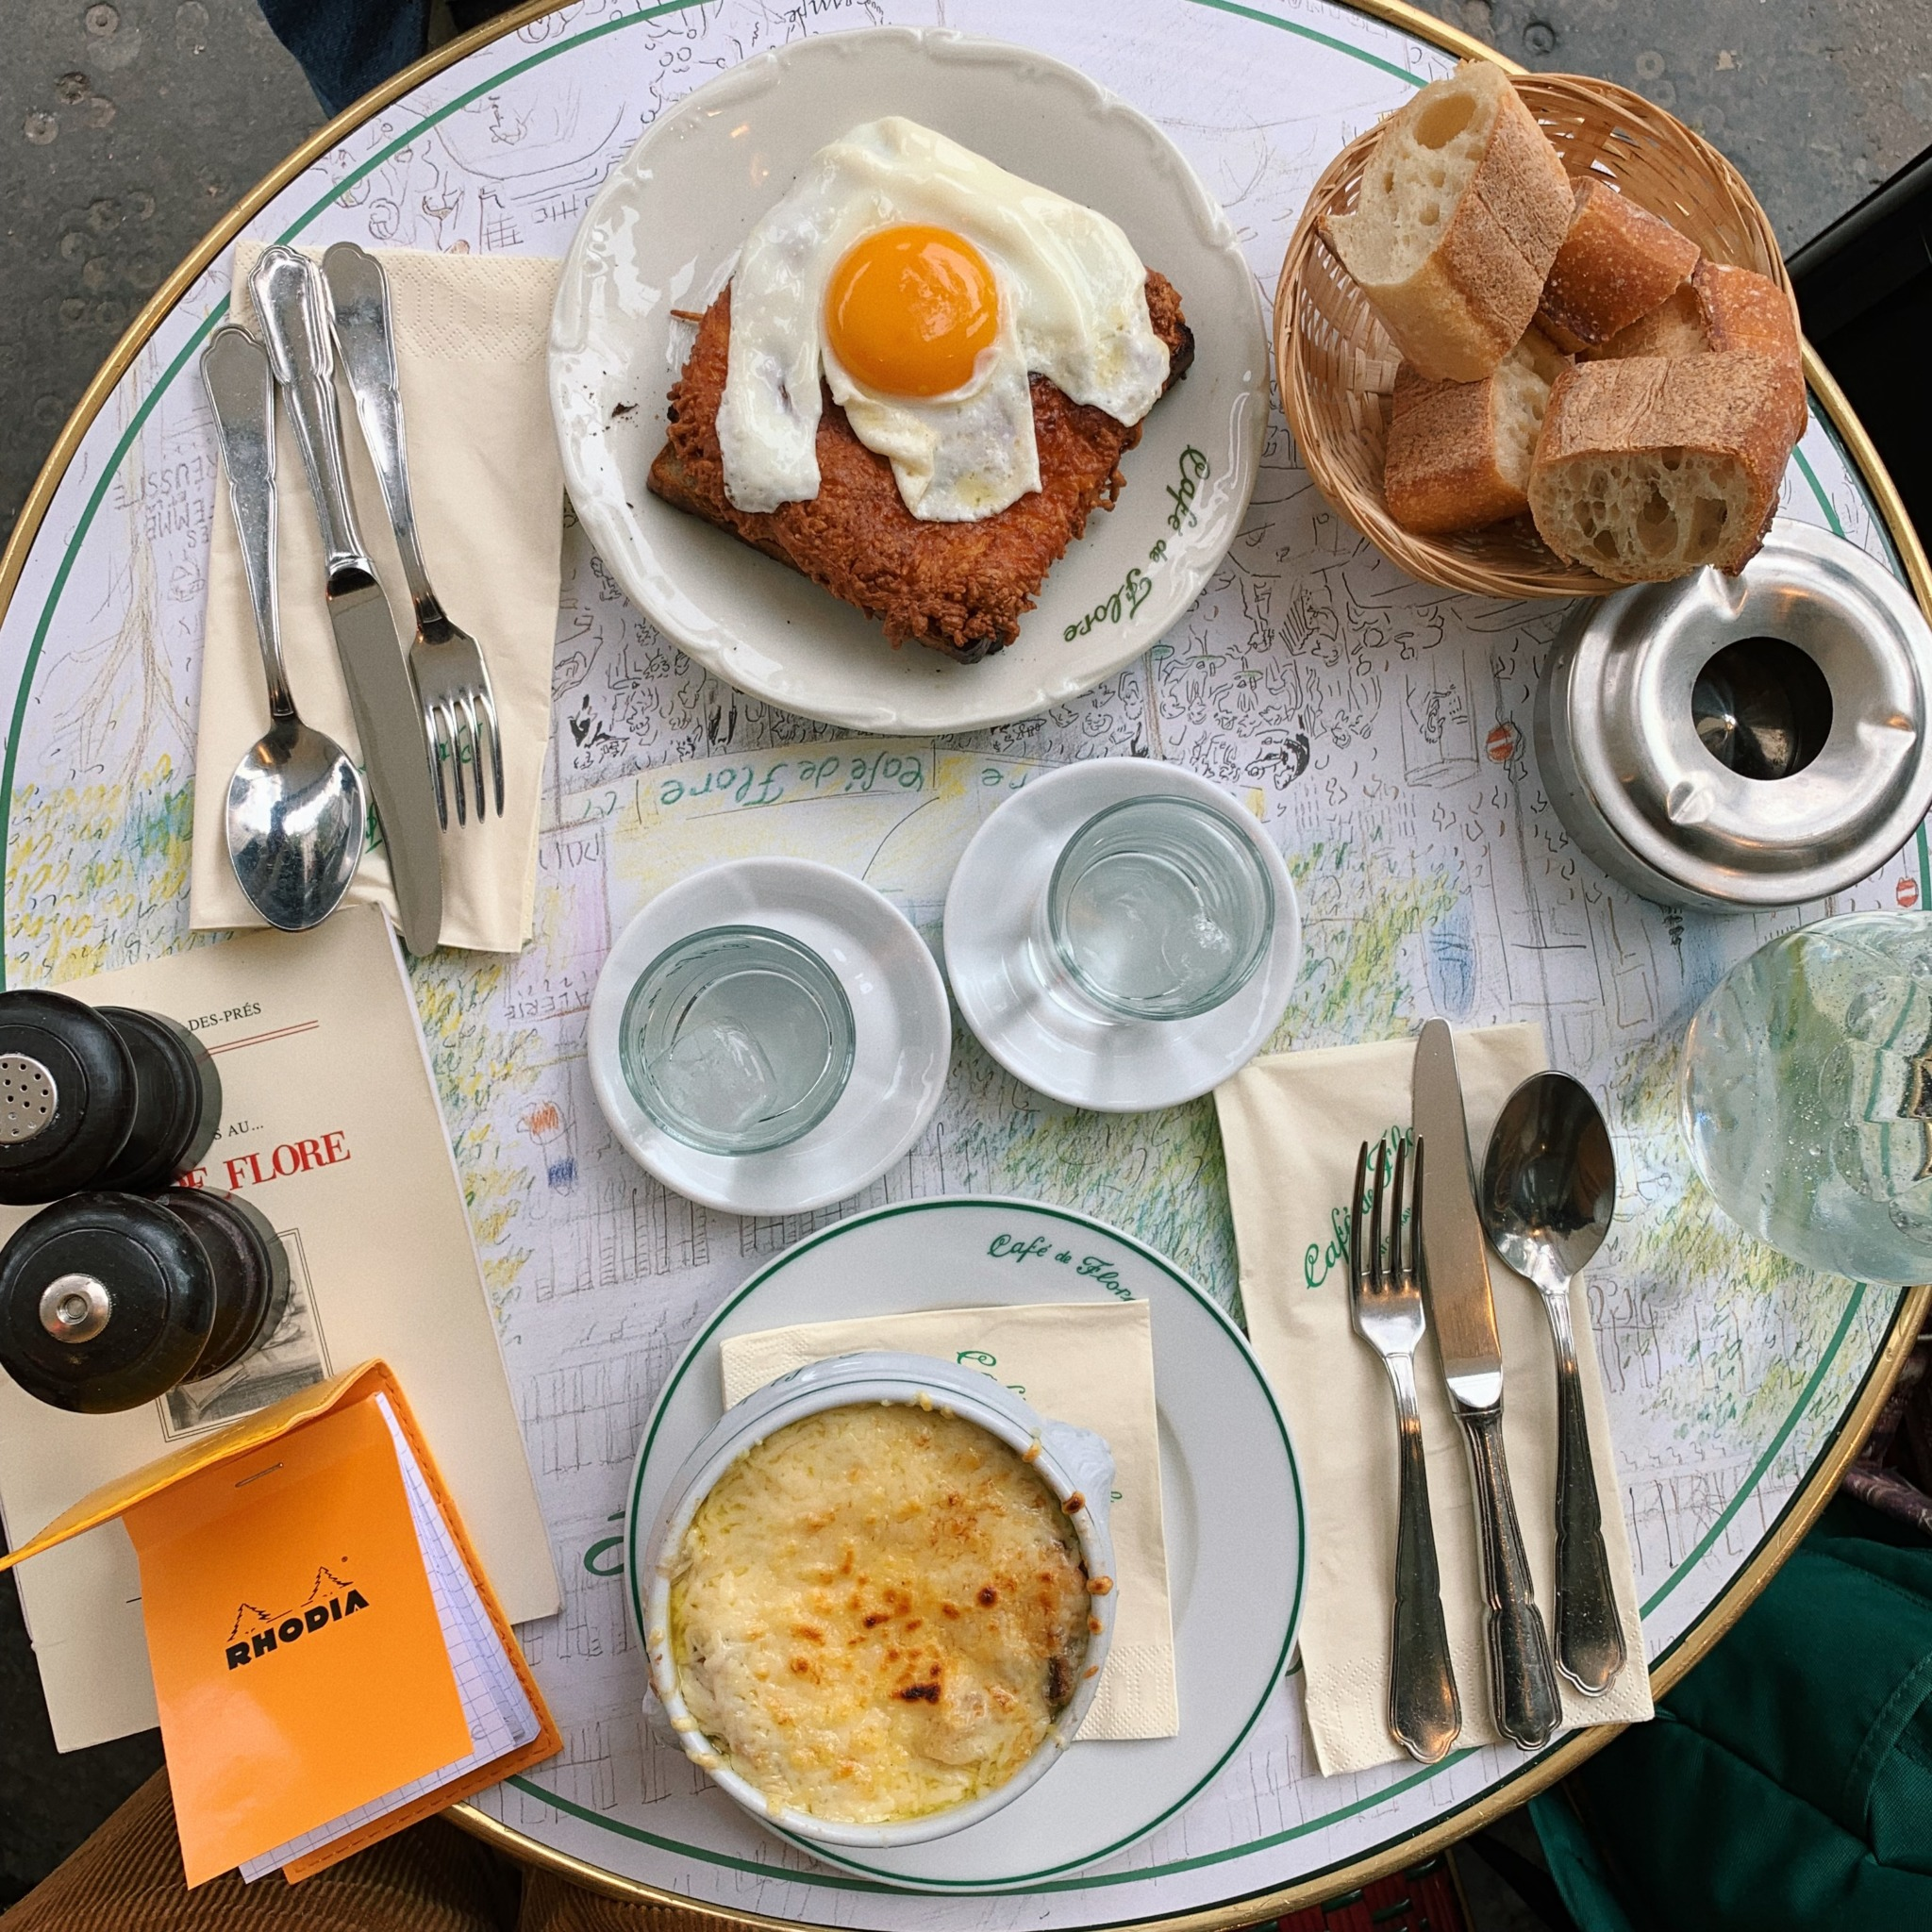 Lunch at Café de Flore